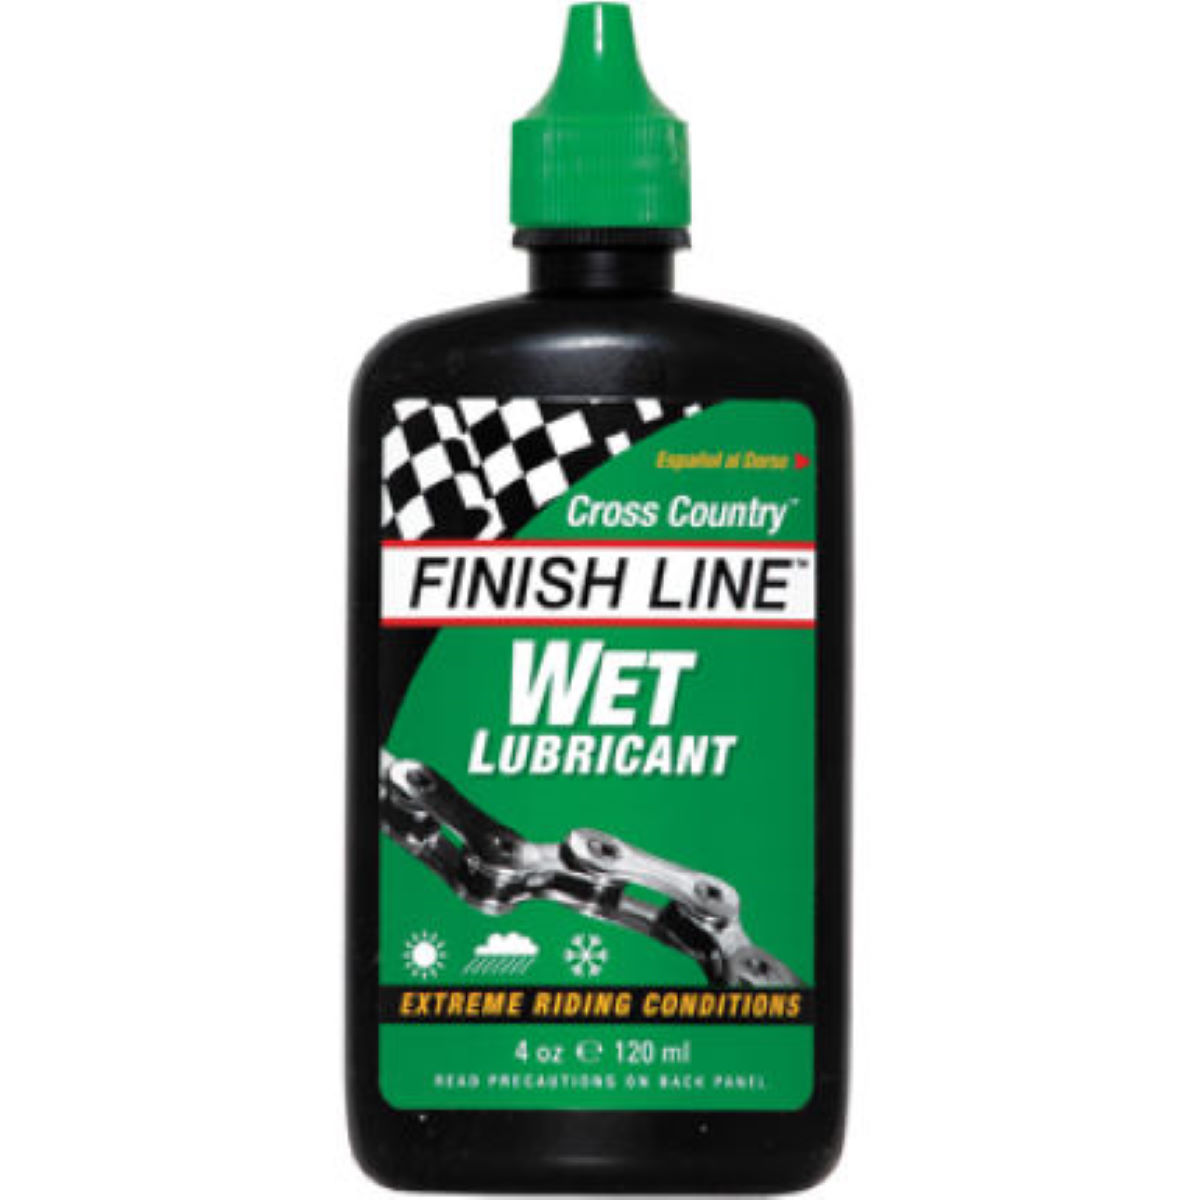 Finish Line Cross Country Wet Lubricant 120ml Bottle - 120ml  Lube